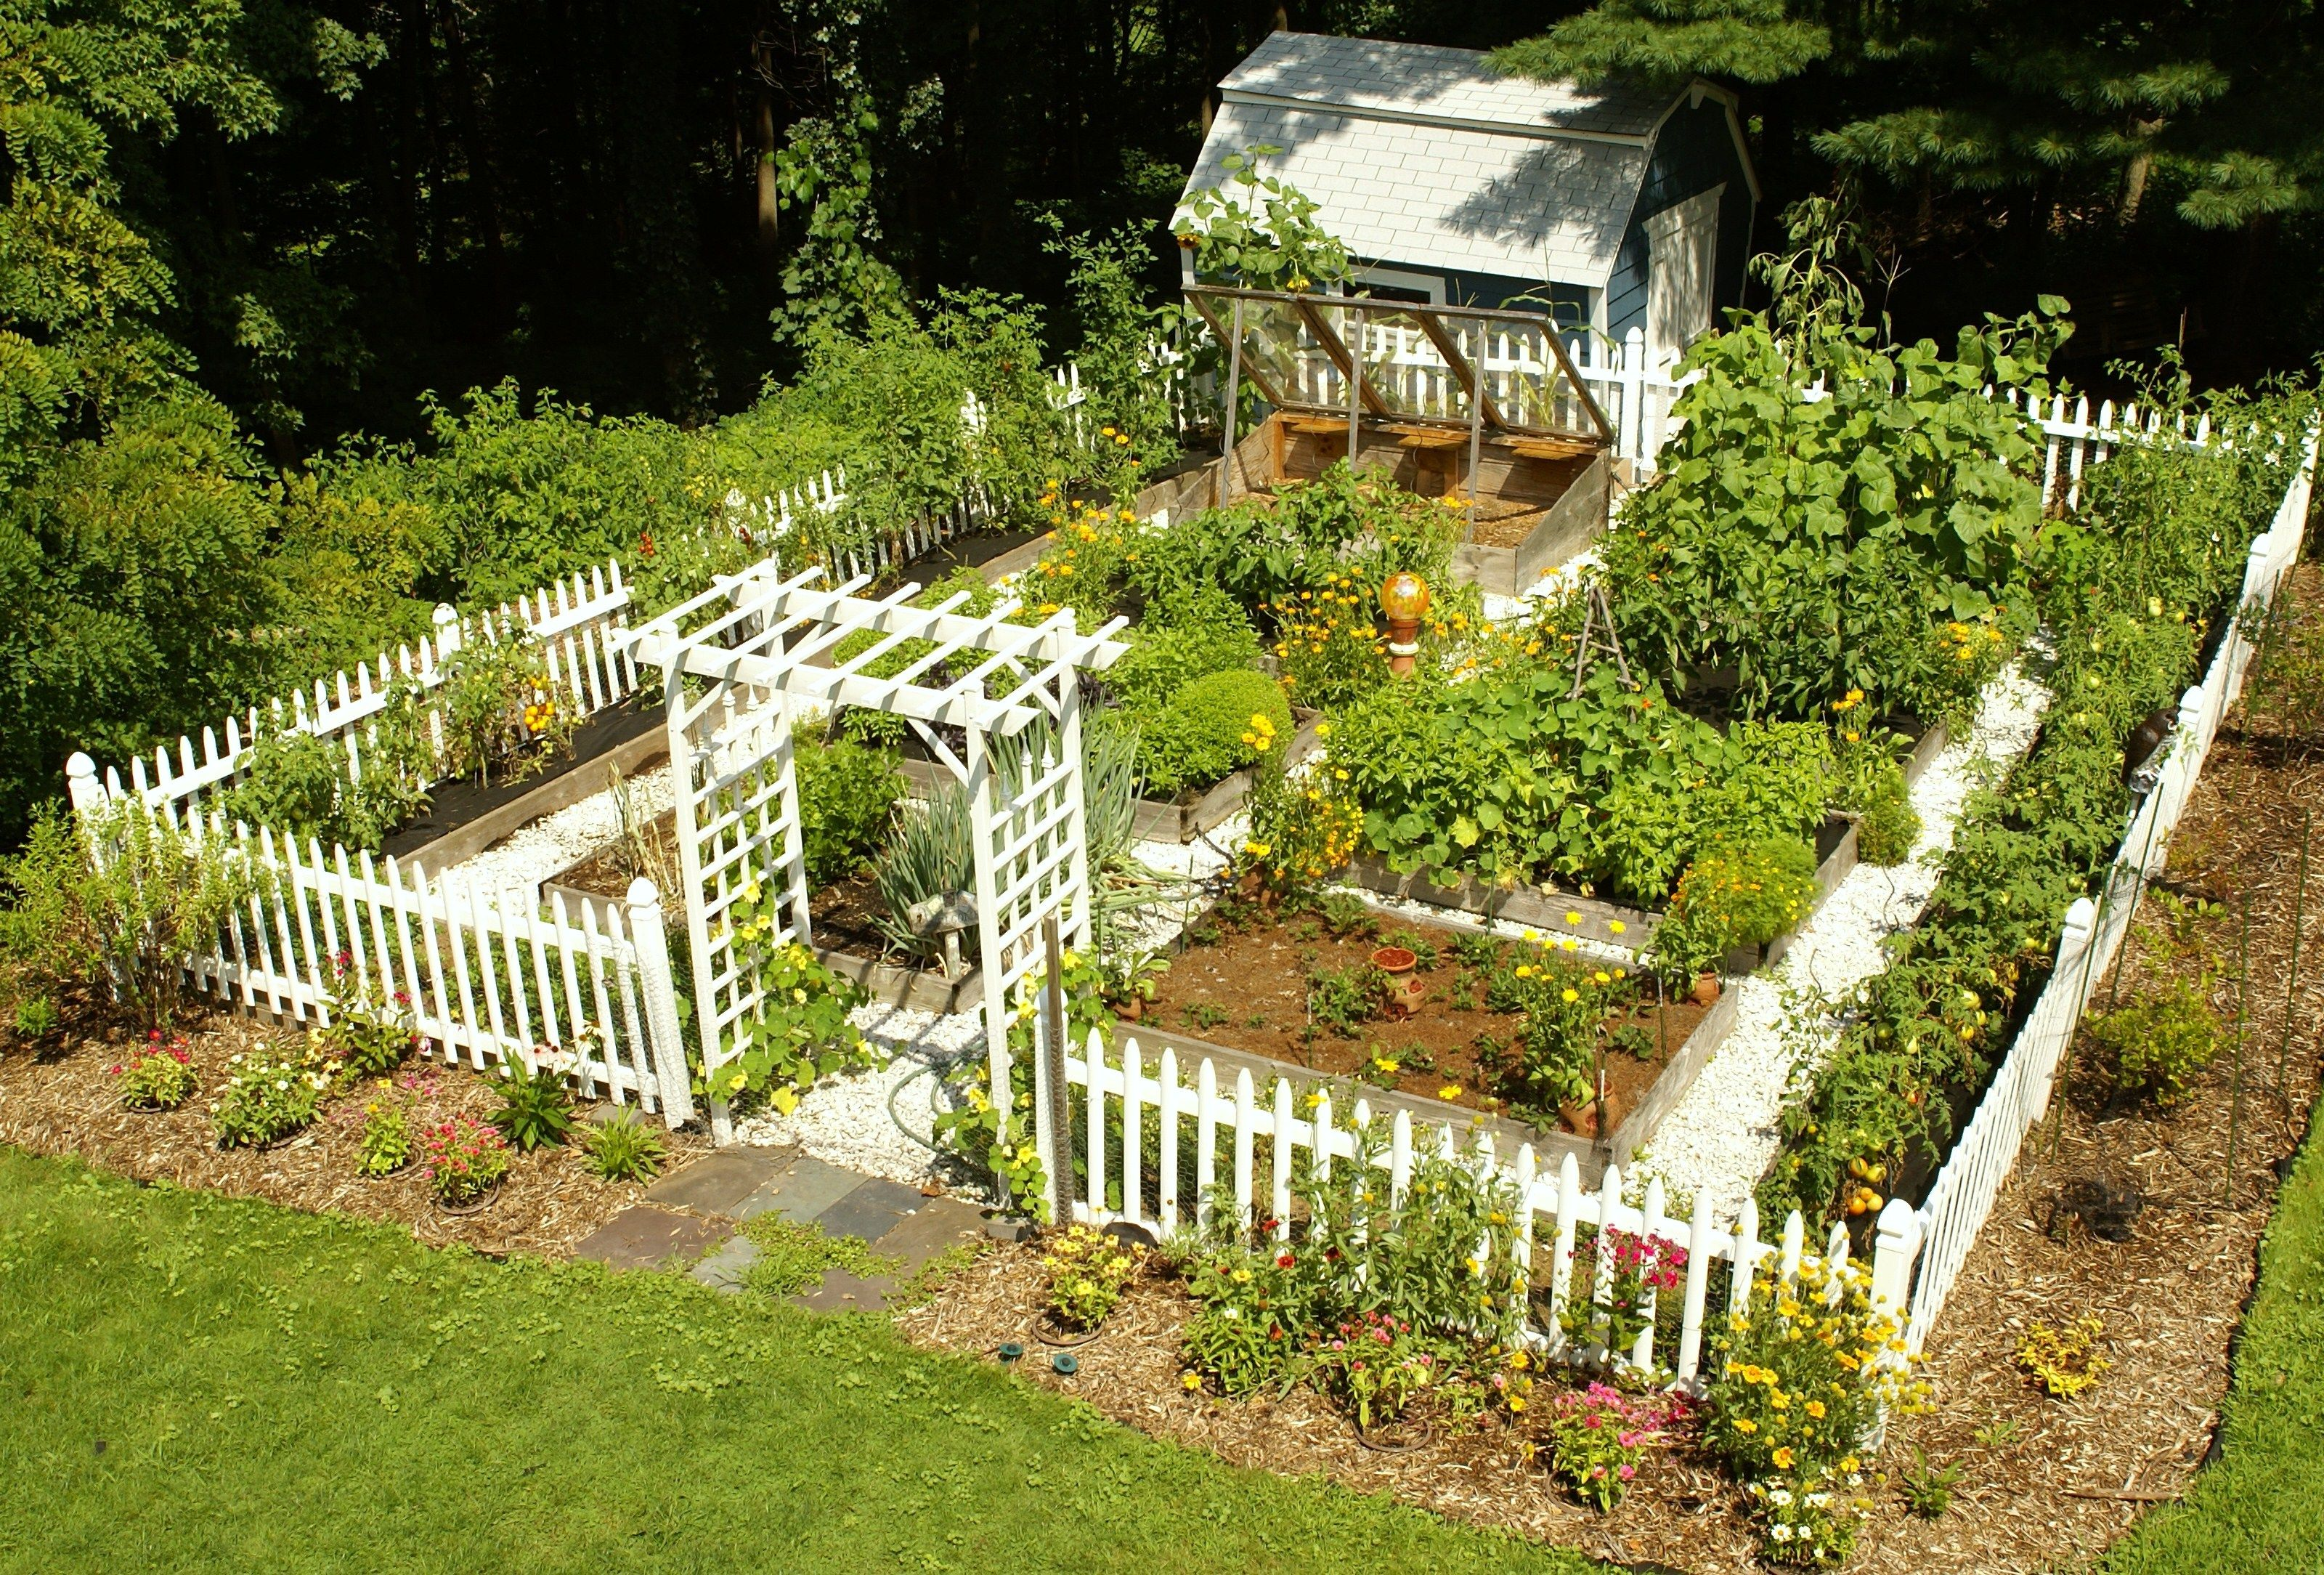 17 Best images about Vegetable Garden Design on Pinterest